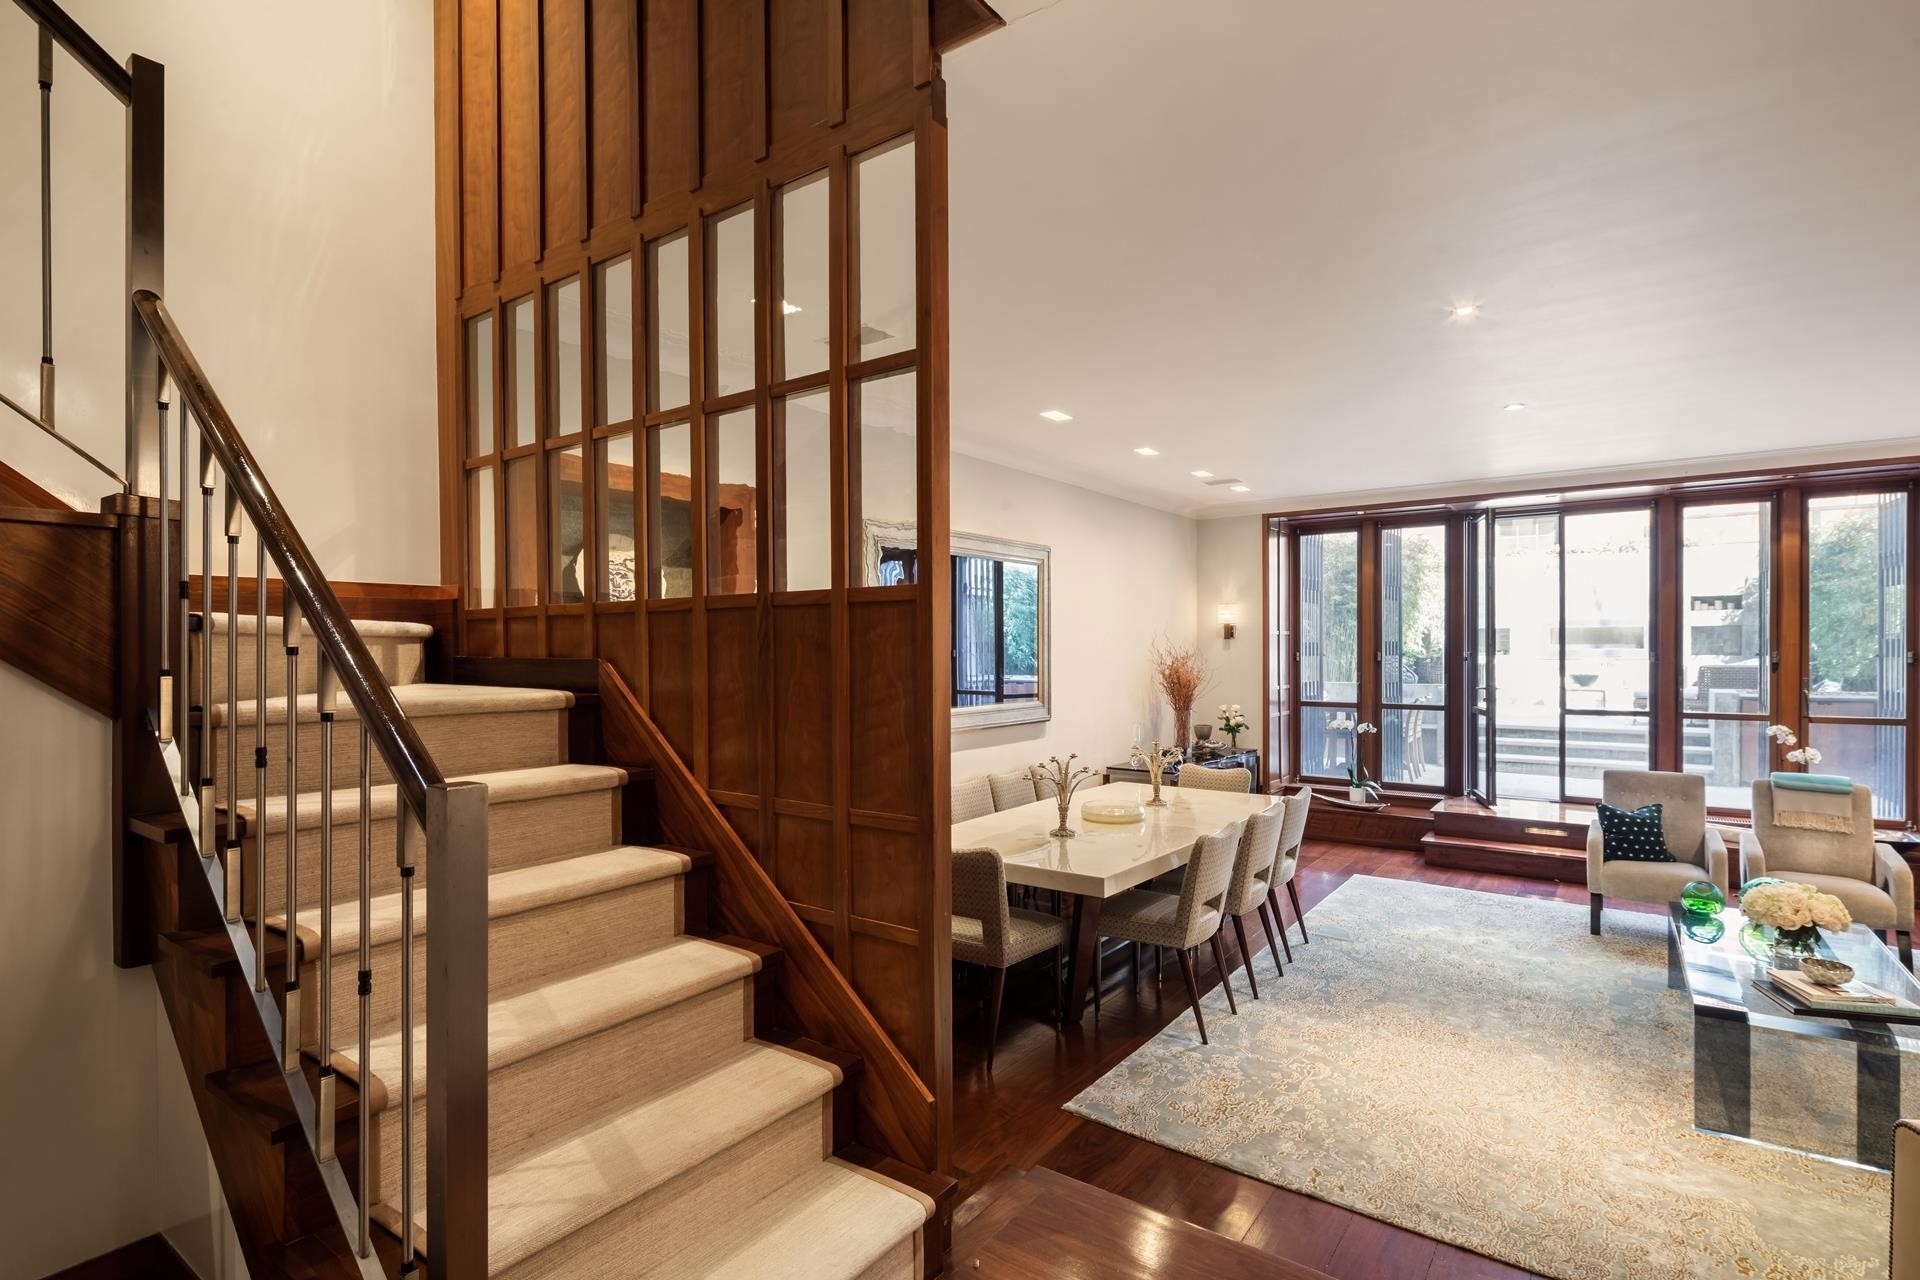 5. Single Family Townhouse for Sale at 159 E 61ST ST , TOWNHOUSE Lenox Hill, New York, NY 10065